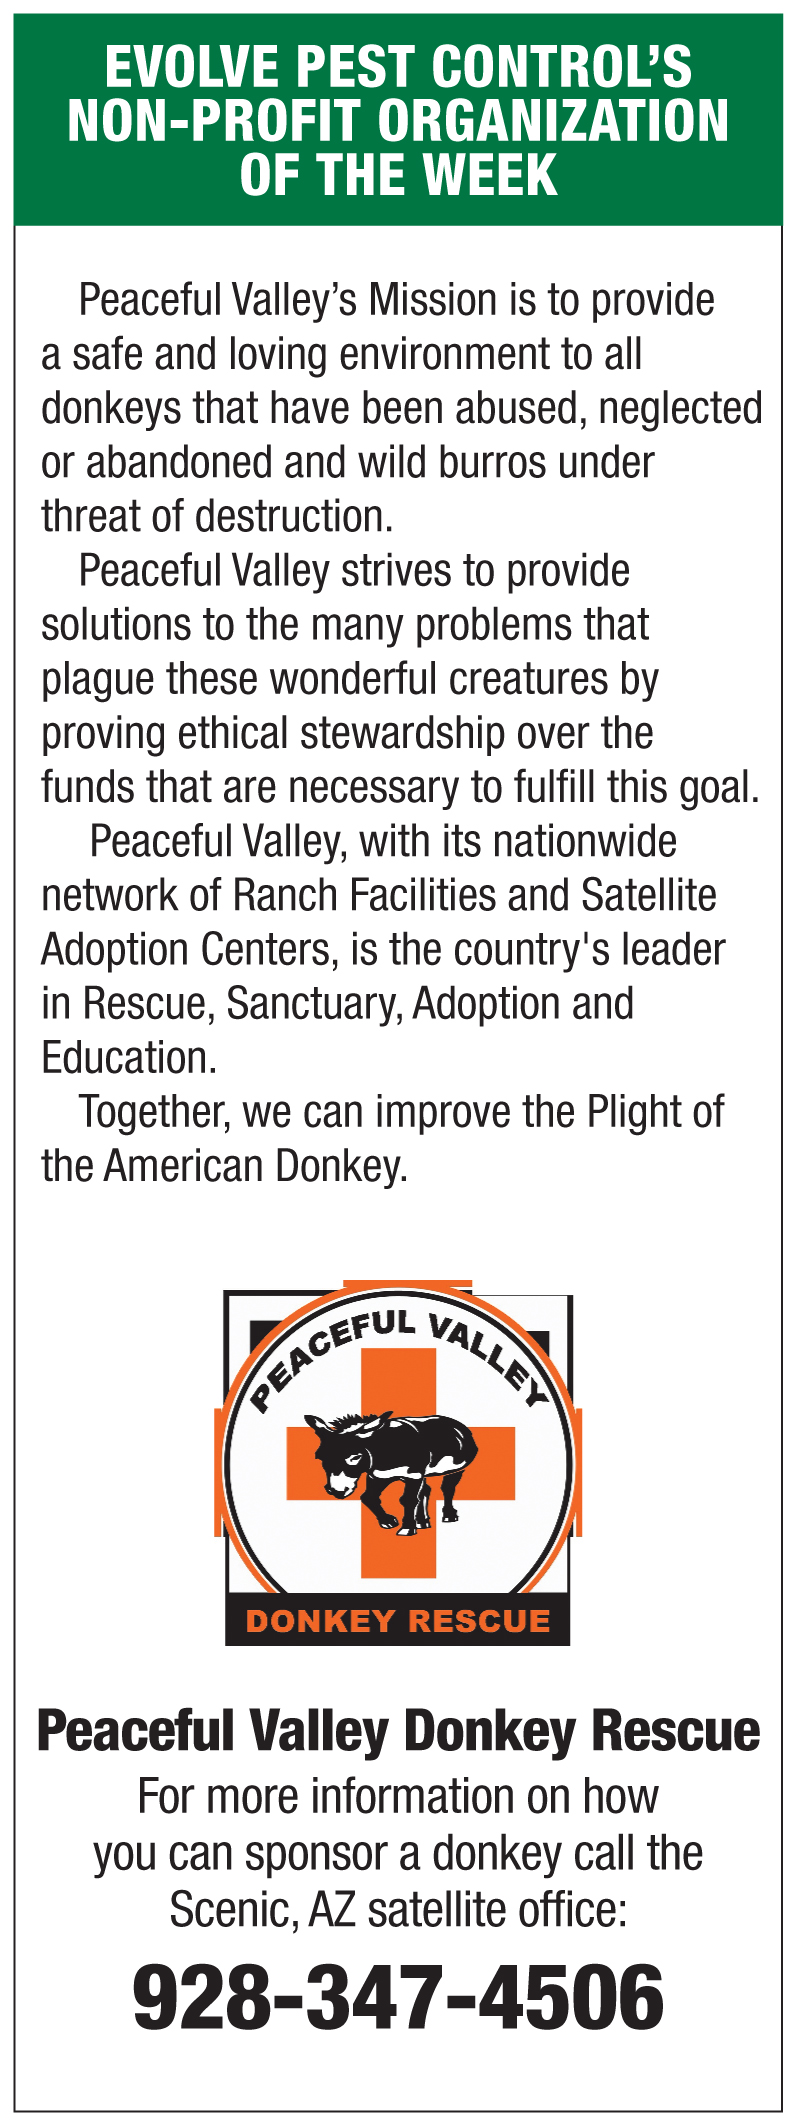 Evolve Pest Control's non-profit of the week